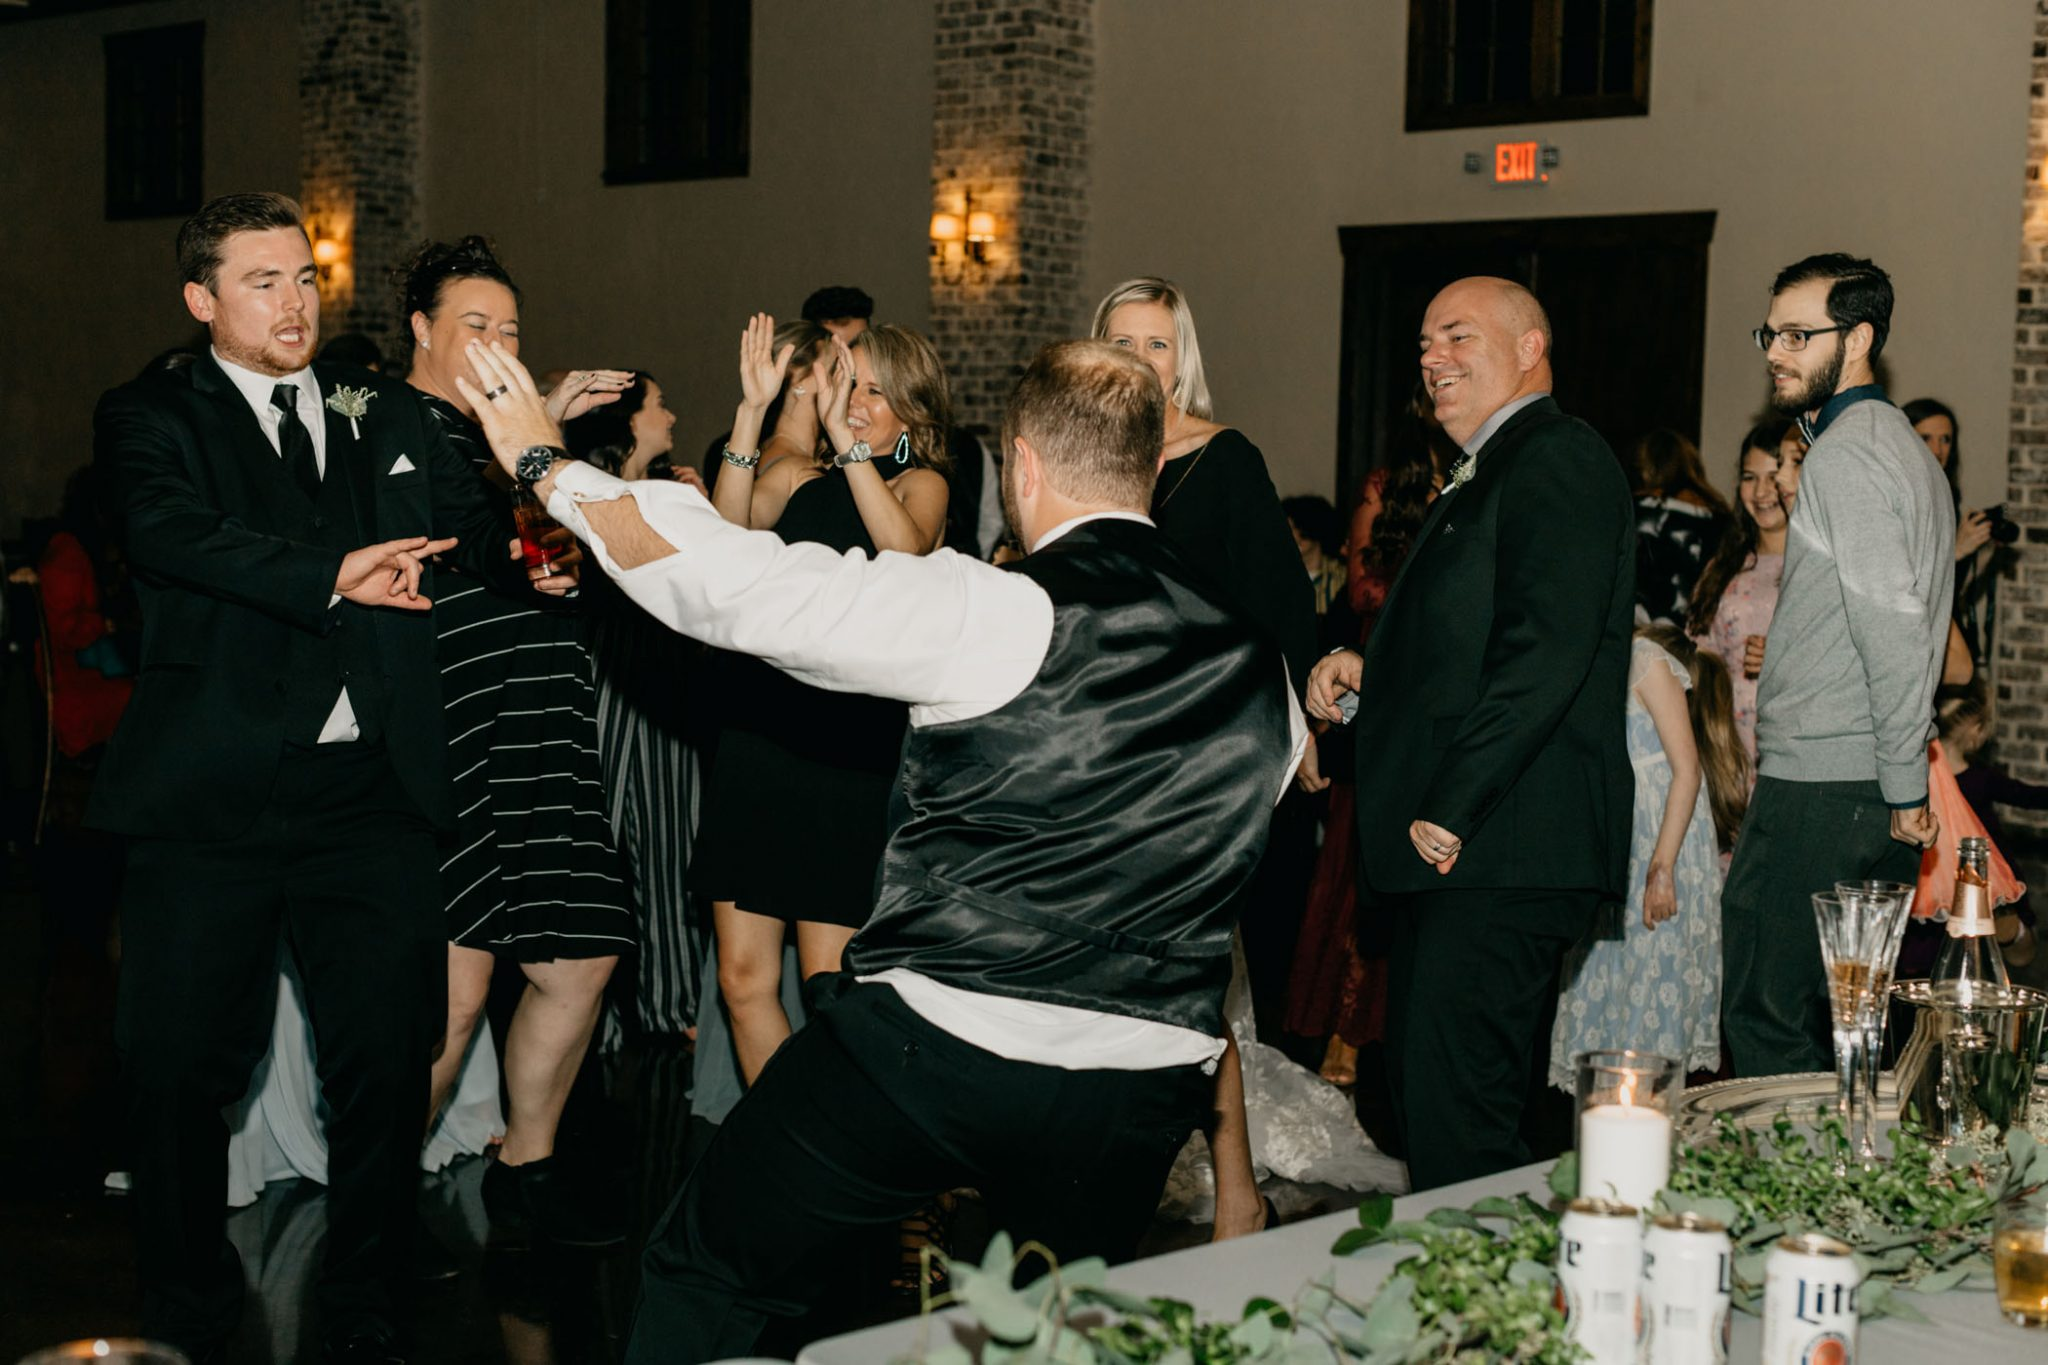 groom dancing and having fun at his wedding reception